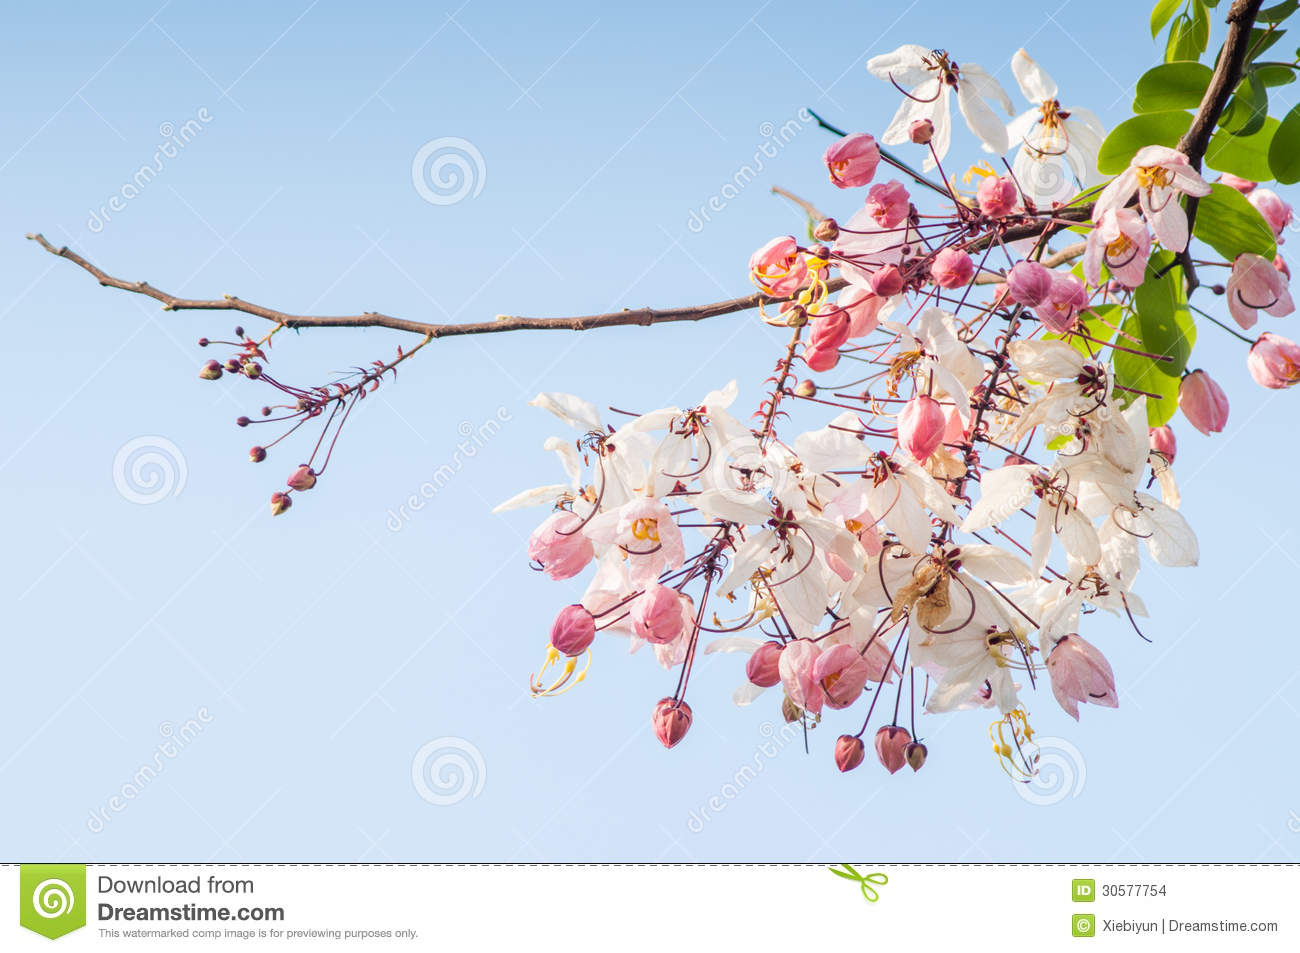 Pink Or Rainbow Shower Tree (Cassia Javanica) . Stock Photo.